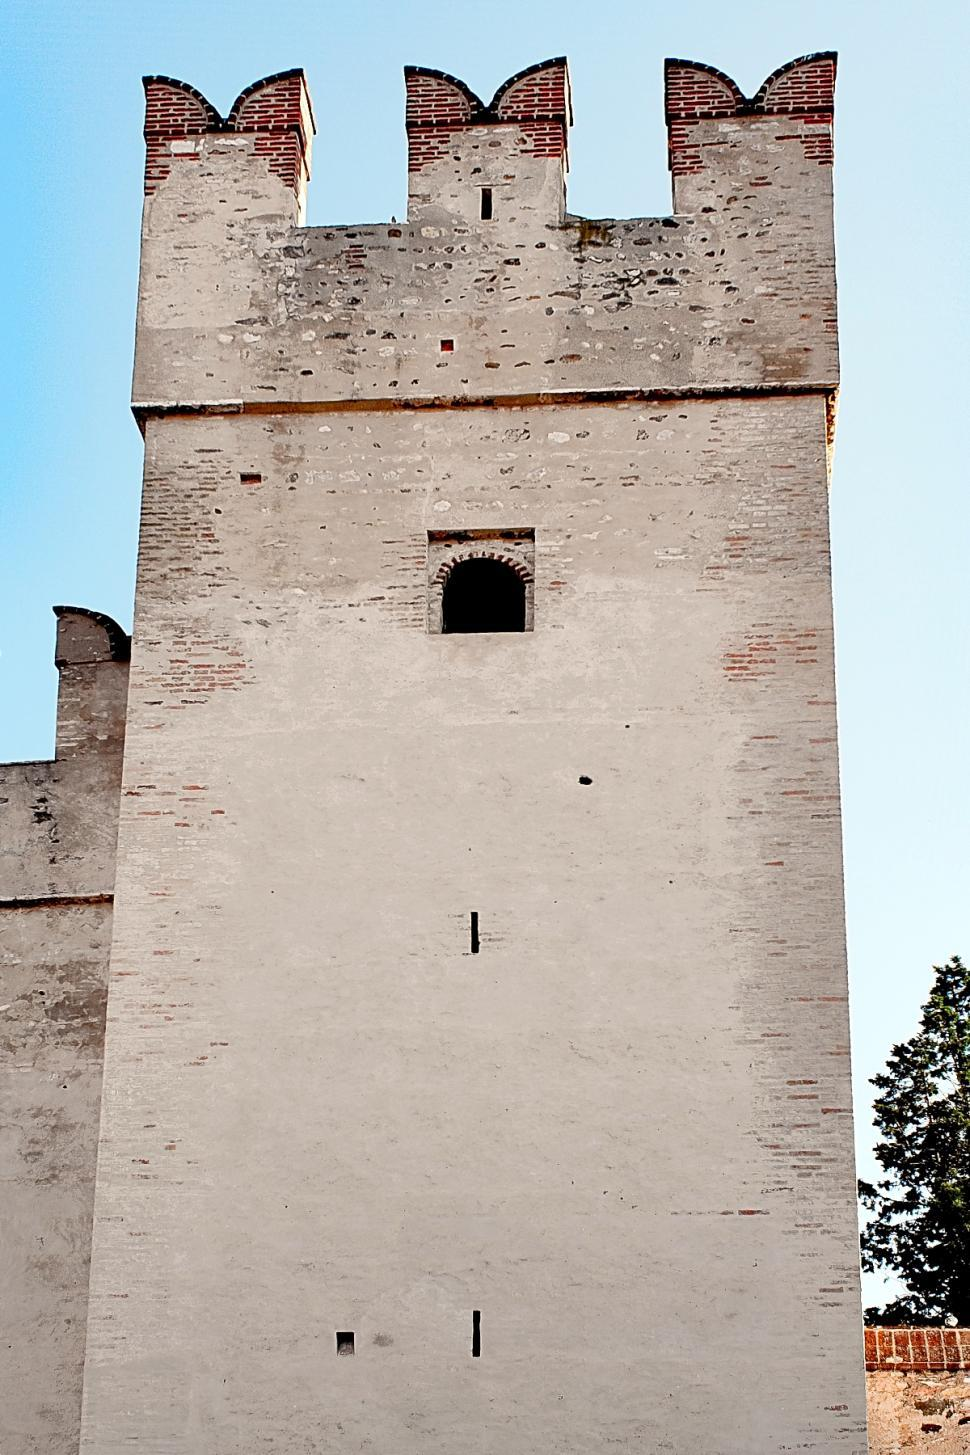 Download Free Stock Photo of Sirmione castle